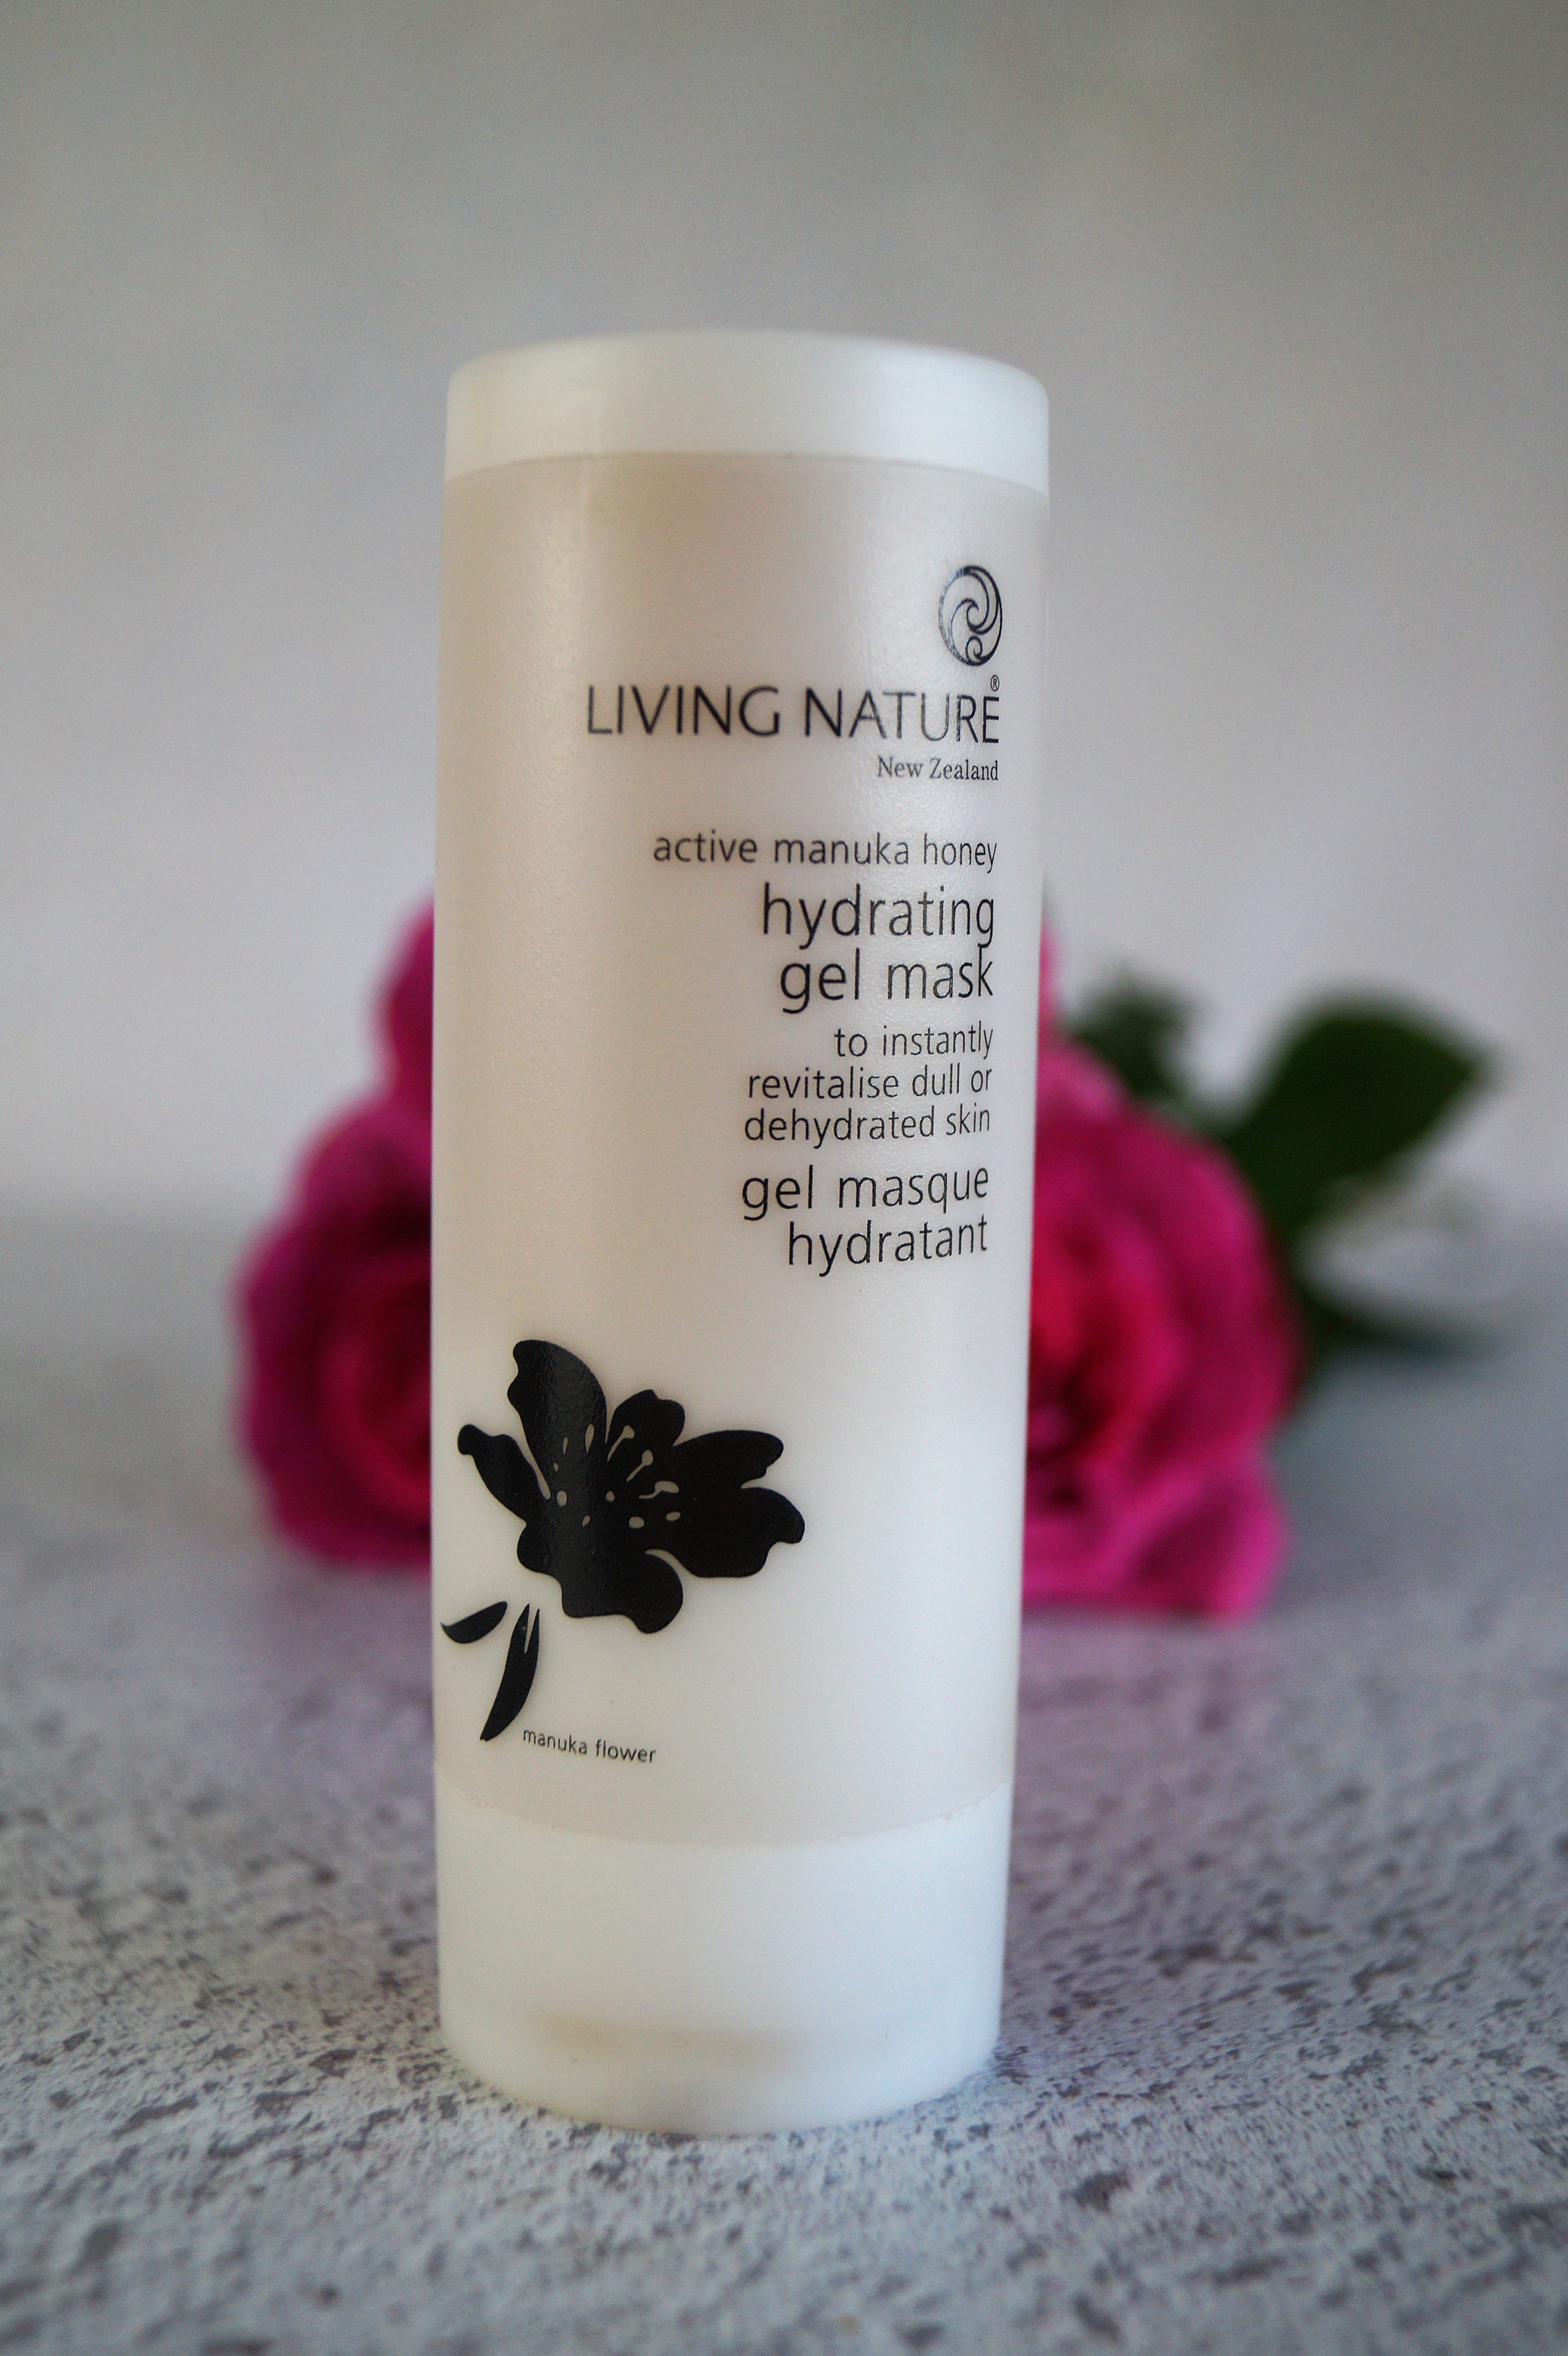 Living Nature Manuka Honey gel mask